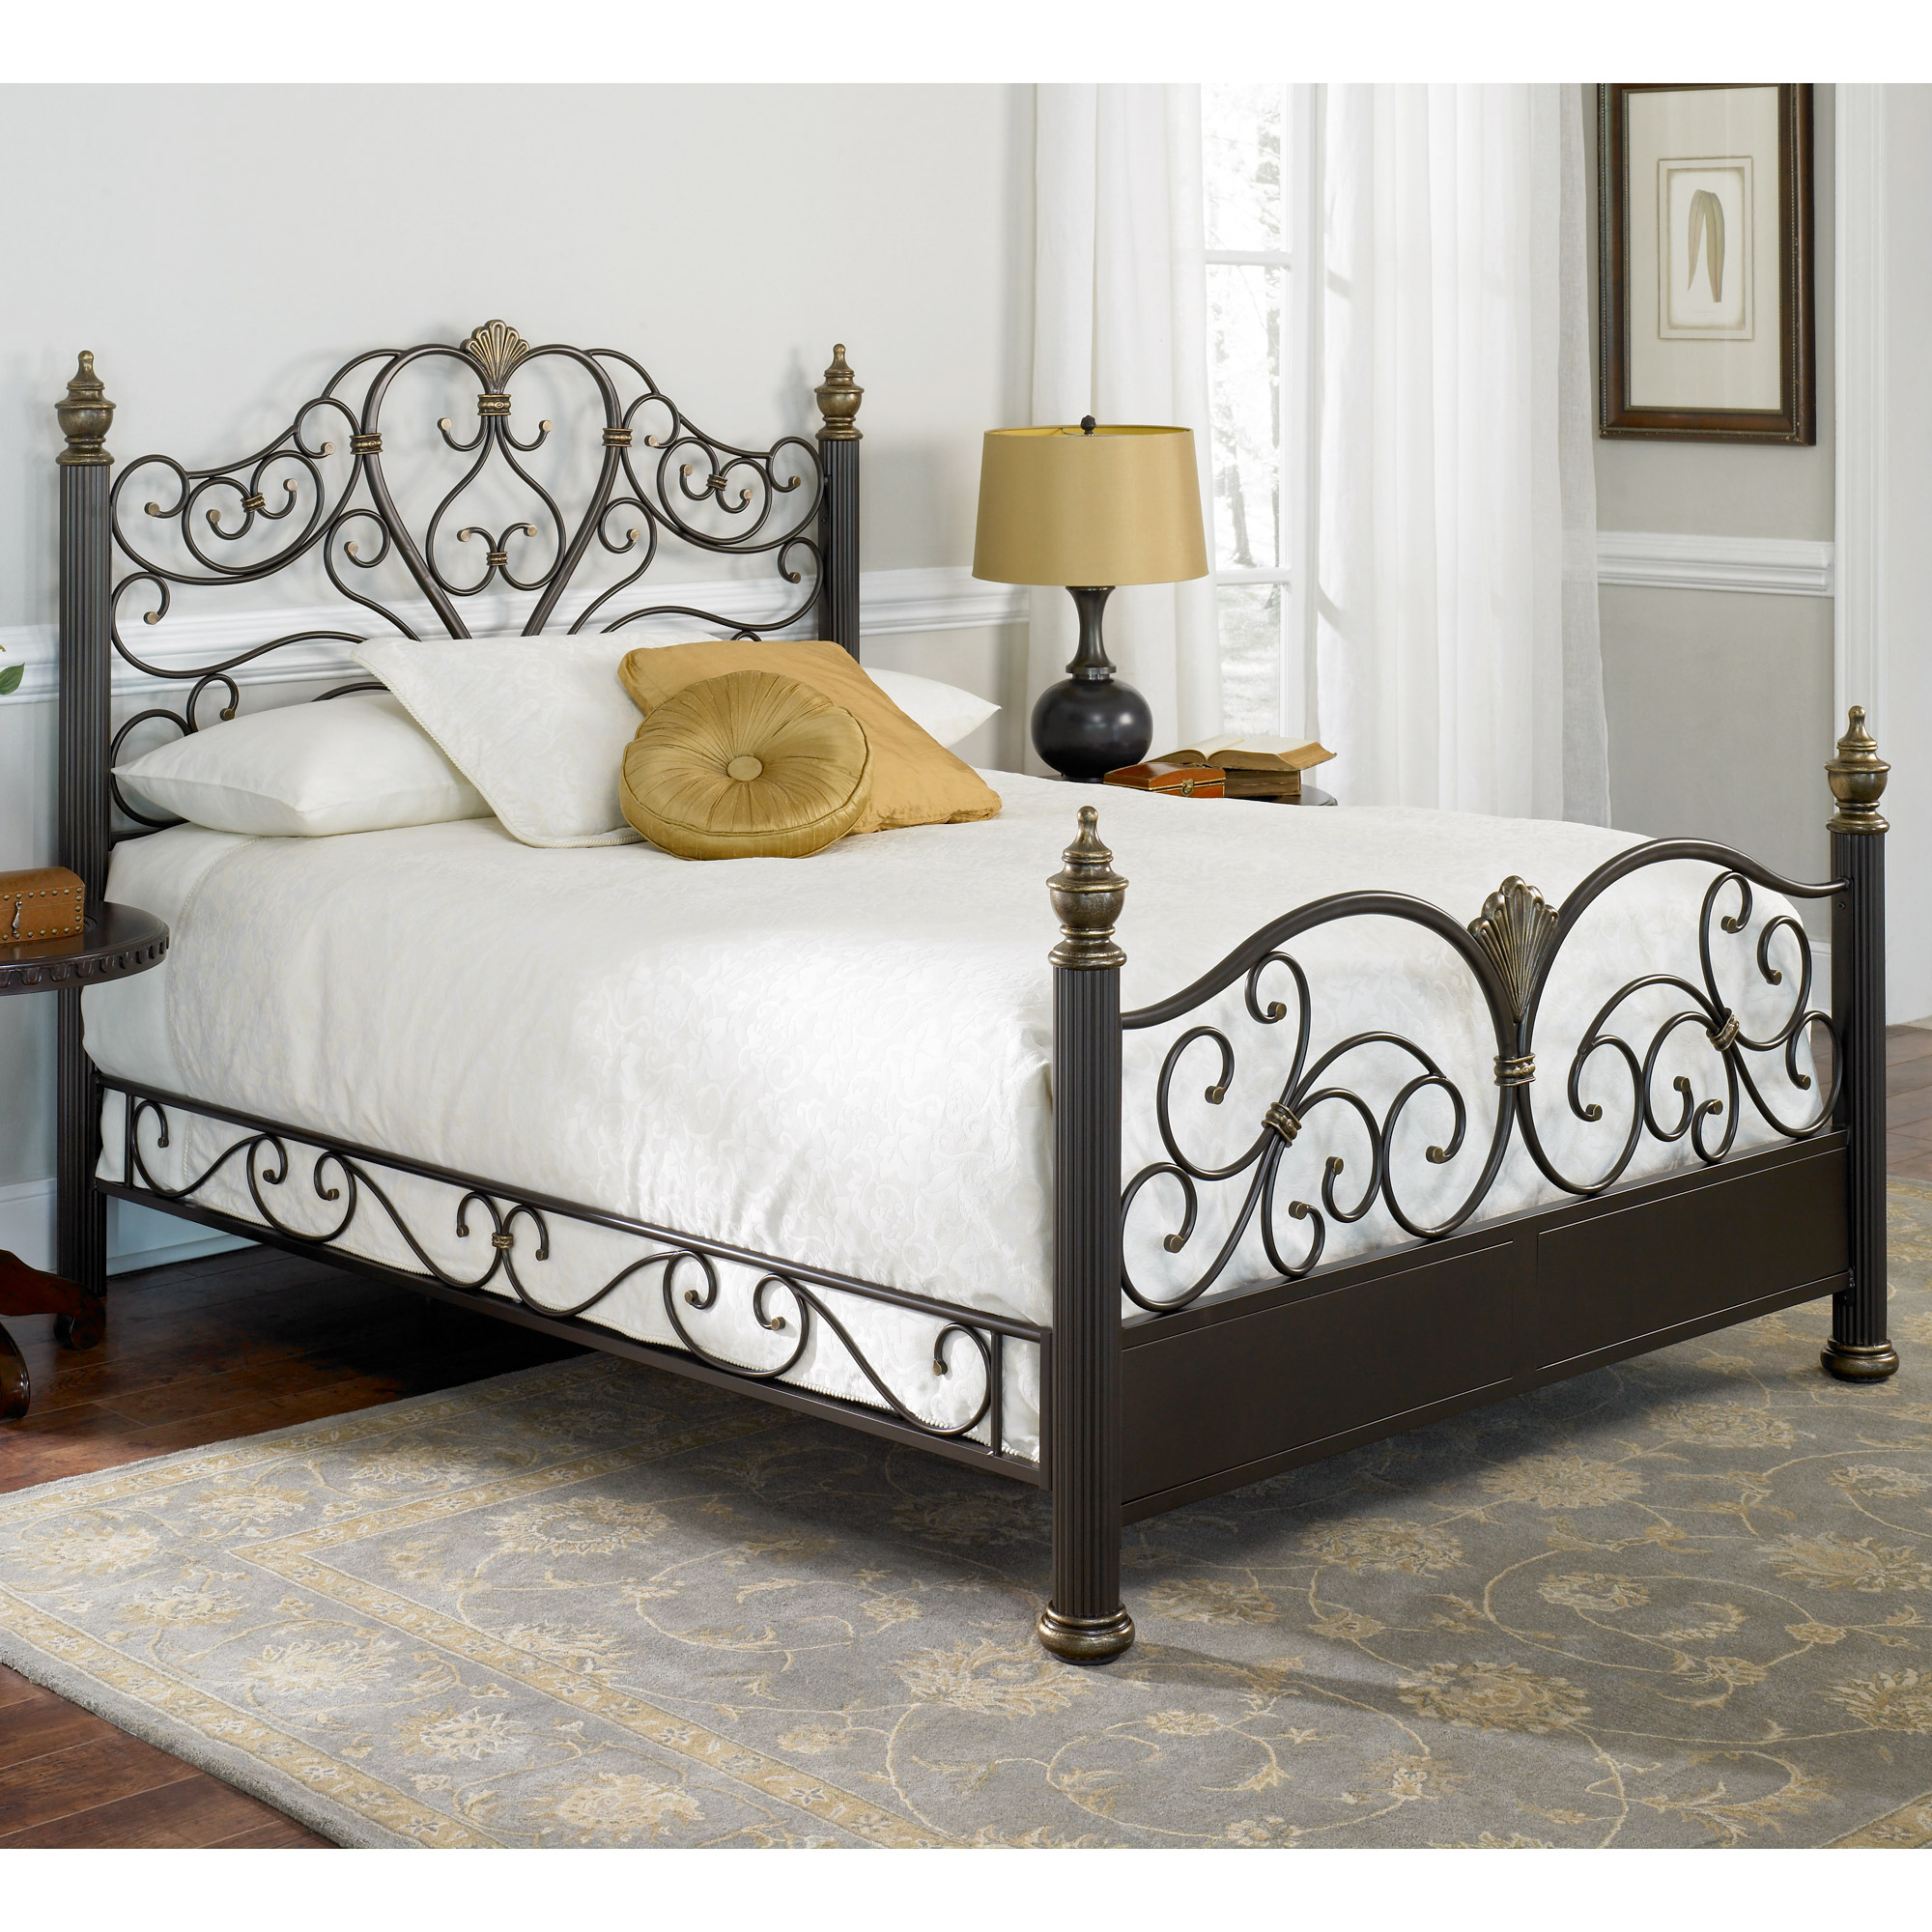 Elegance Iron Bed Ornate Victorian Design Glided Truffle